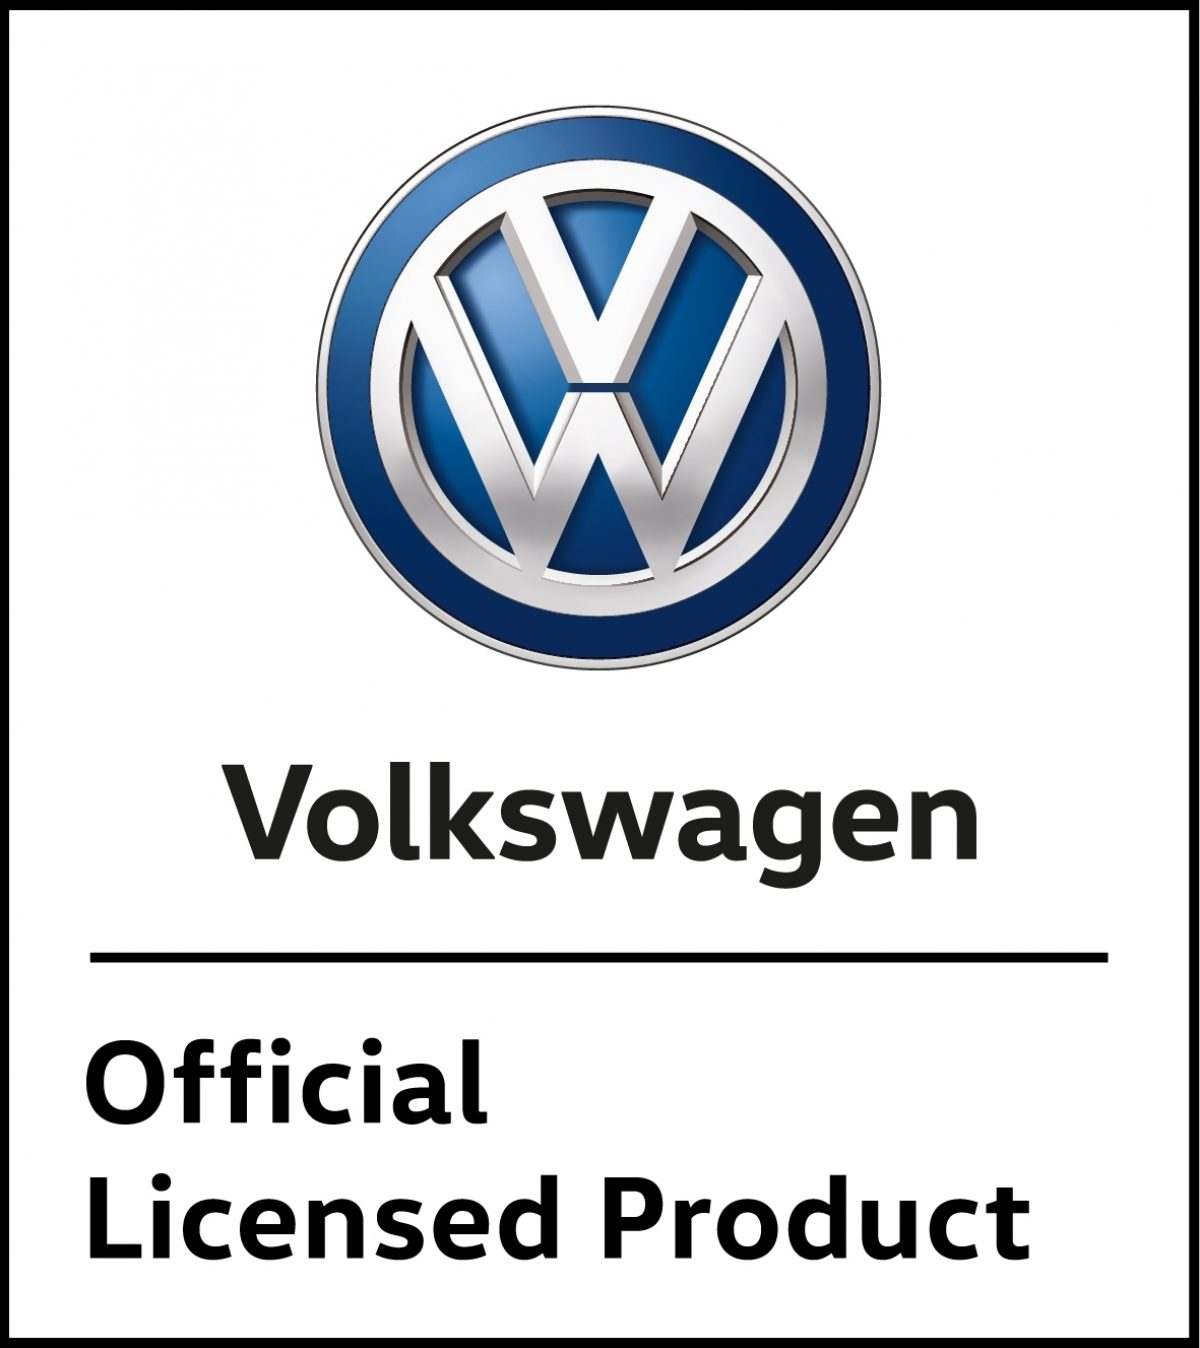 Vw Official Licensed Product Rgbl 01